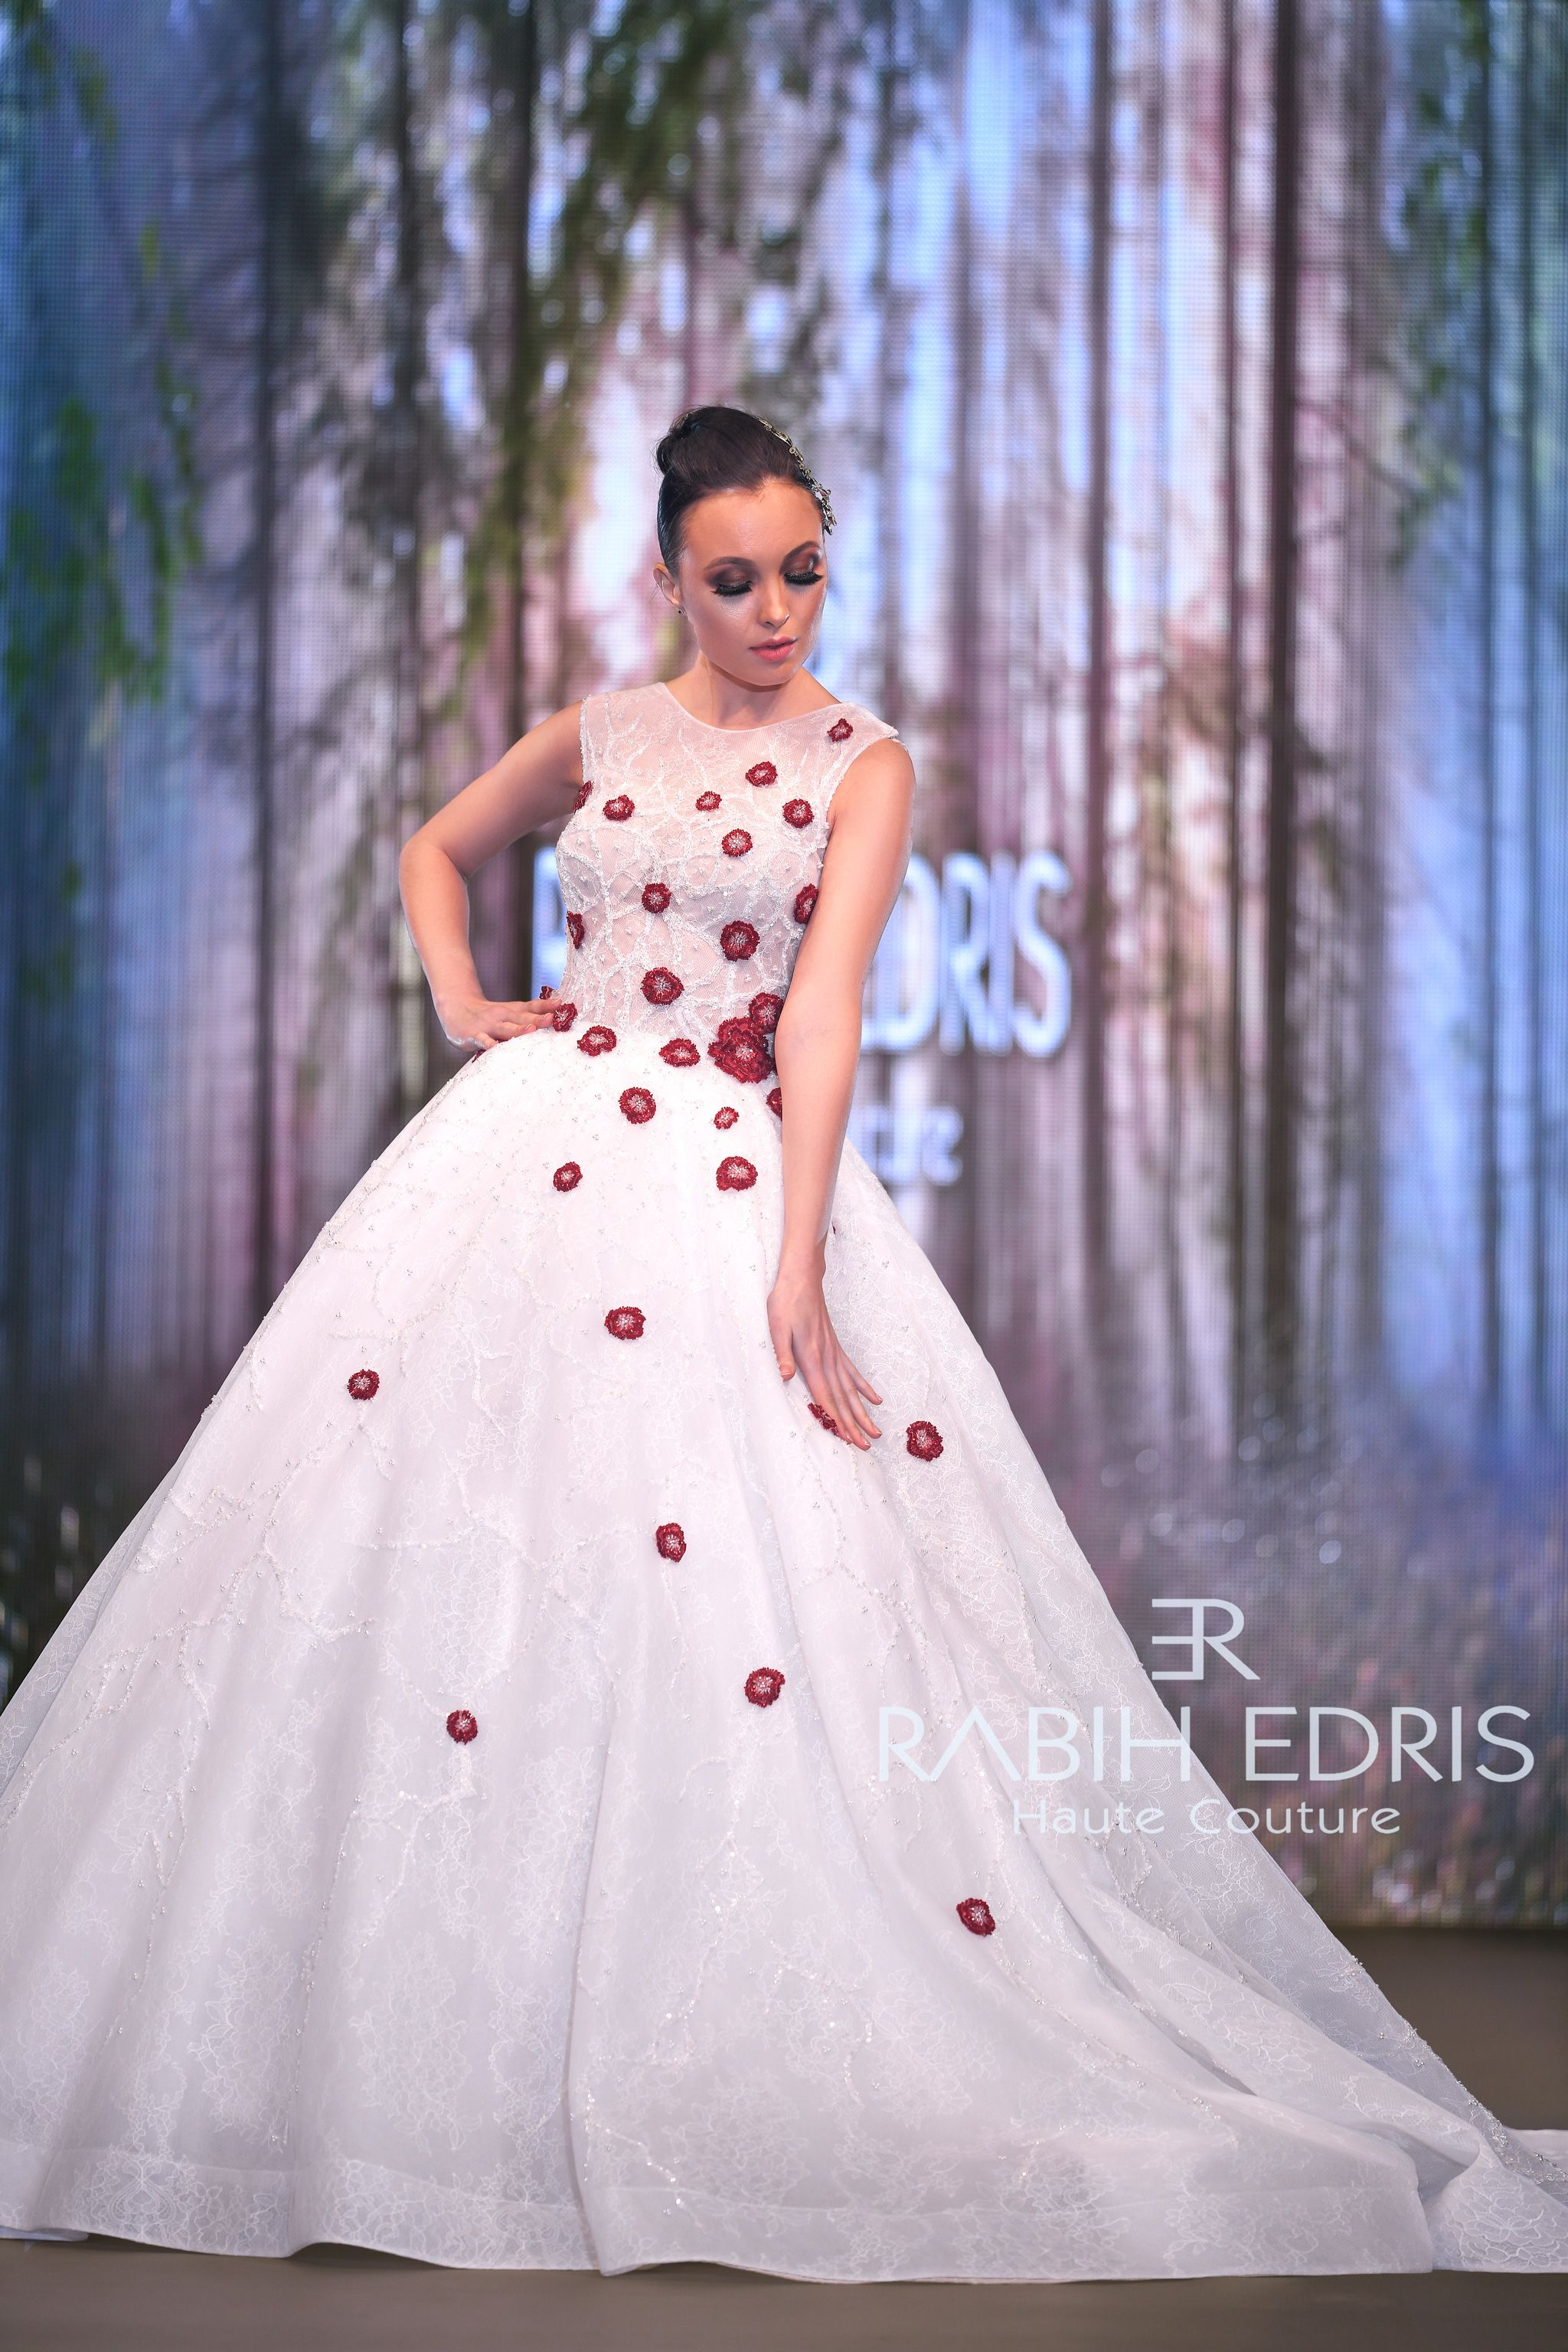 Wedding Dress White Red Roses Front Ss2018 Rabih Edris Haute Couture Red Bridal Gown Ball Gown Wedding Dress Red White Wedding Dress [ 3072 x 2048 Pixel ]